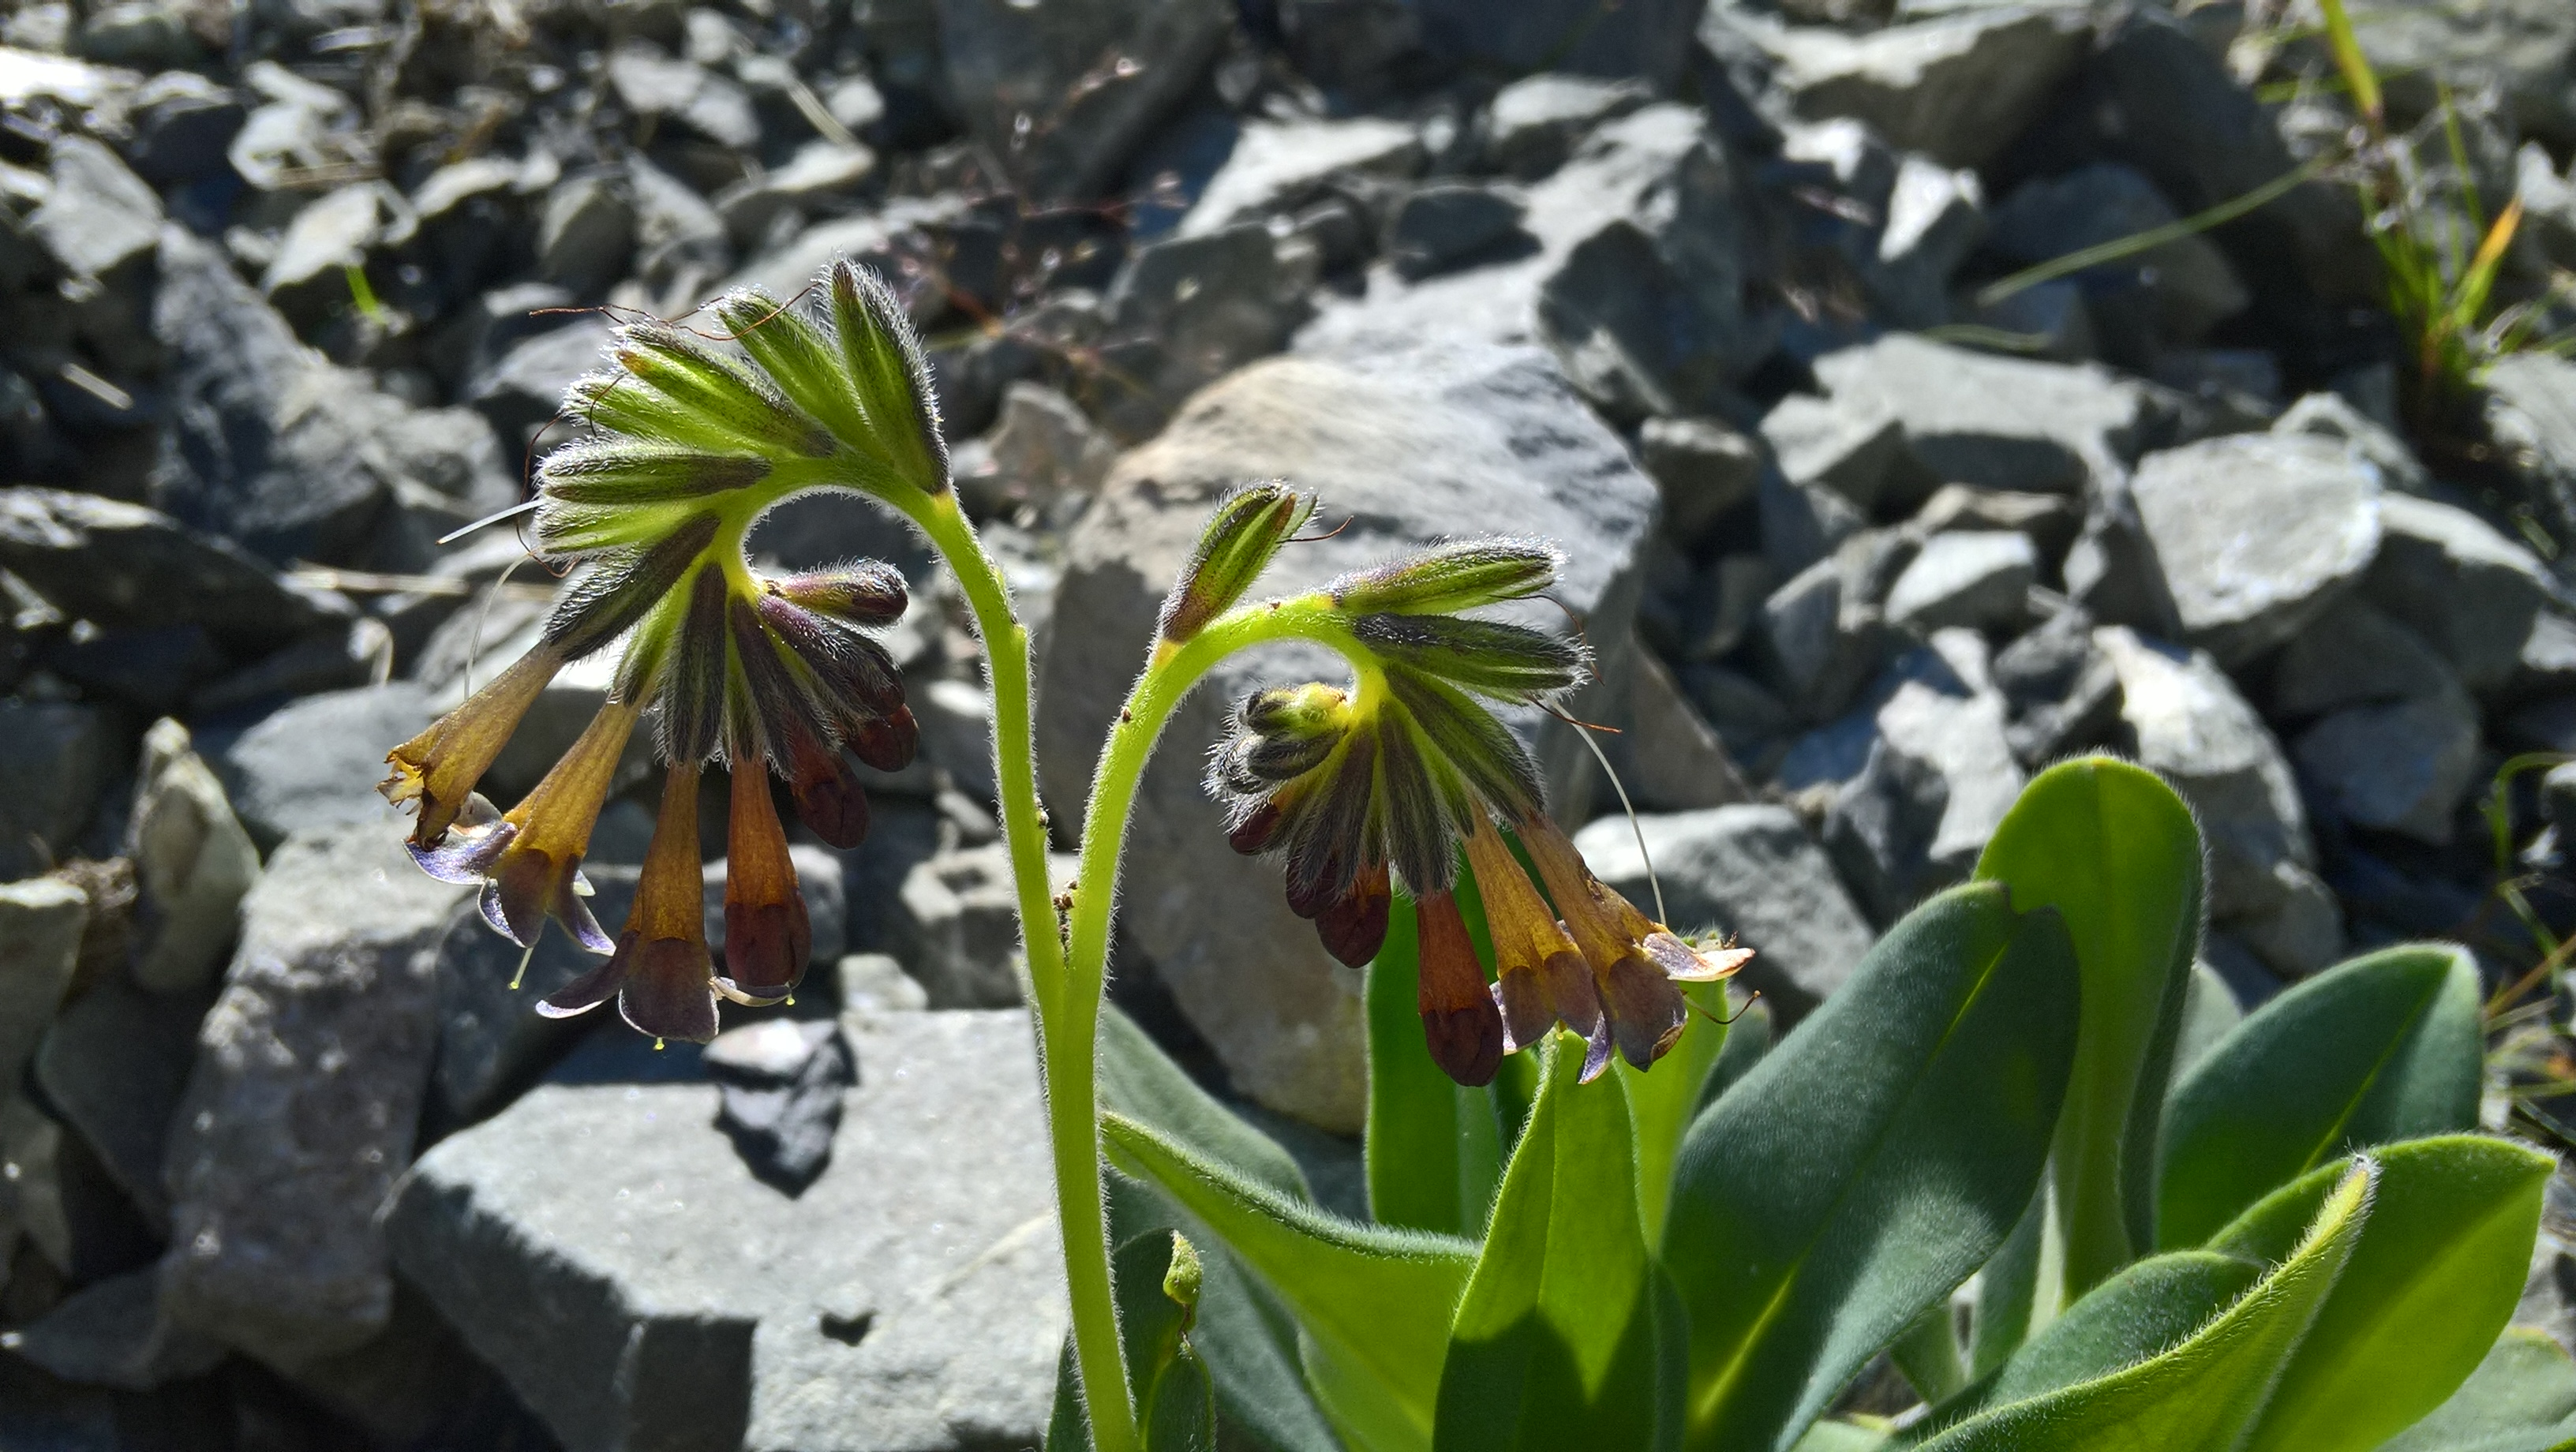 Close up photo of a flowering plant in the sun with rocks in the background